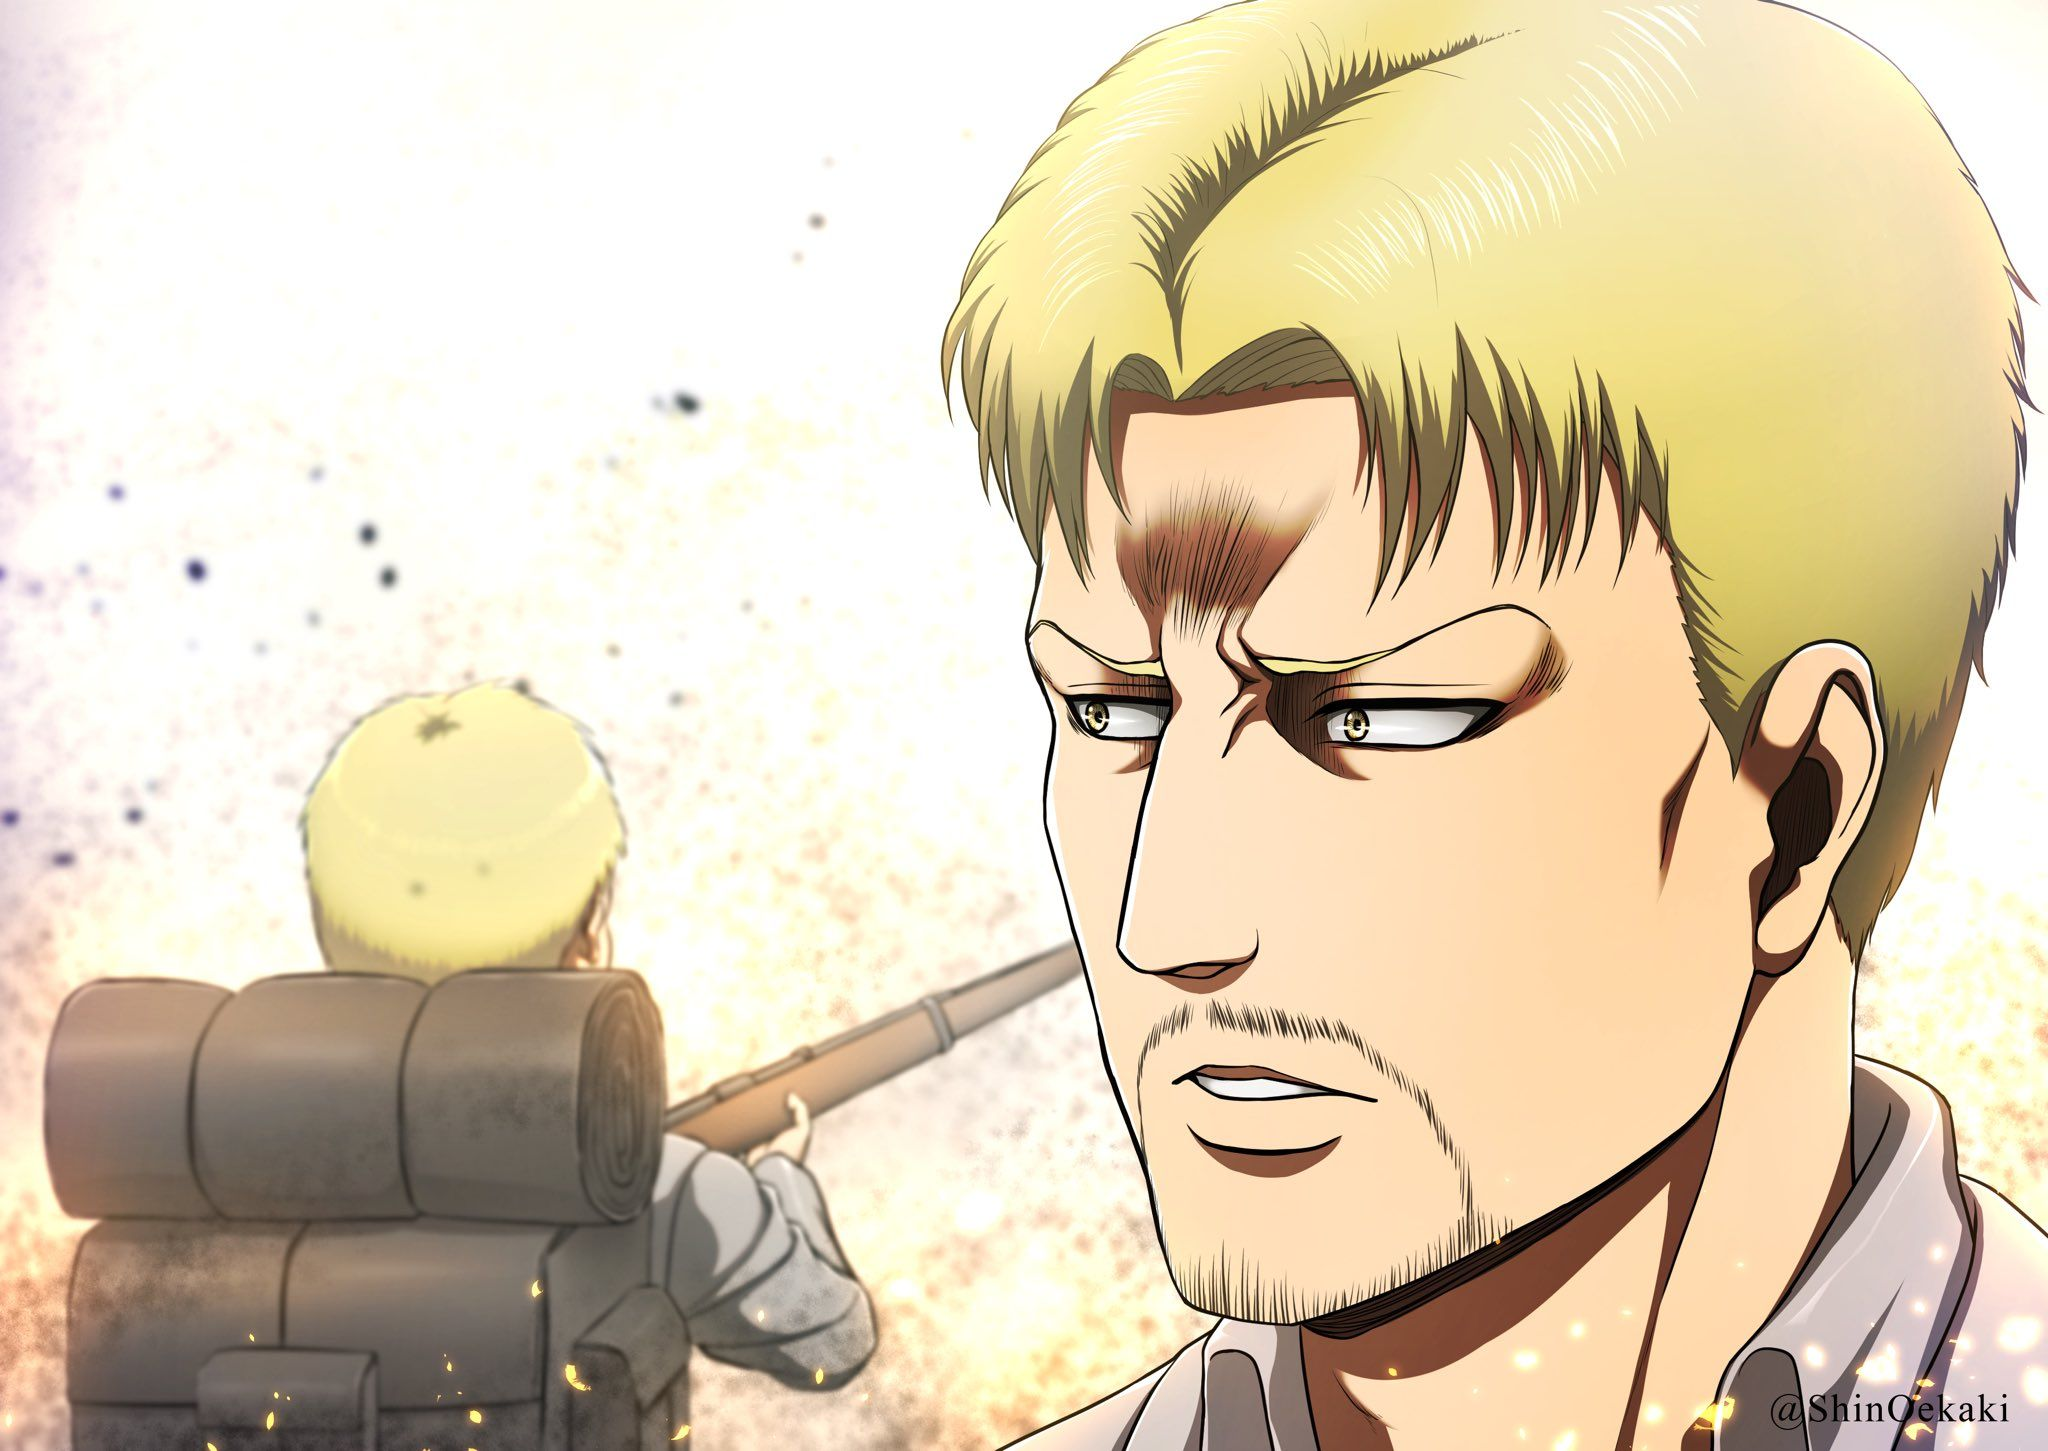 Shinちゃま On Twitter In 2020 Attack On Titan Art Attack On Titan Meme Attack On Titan Anime